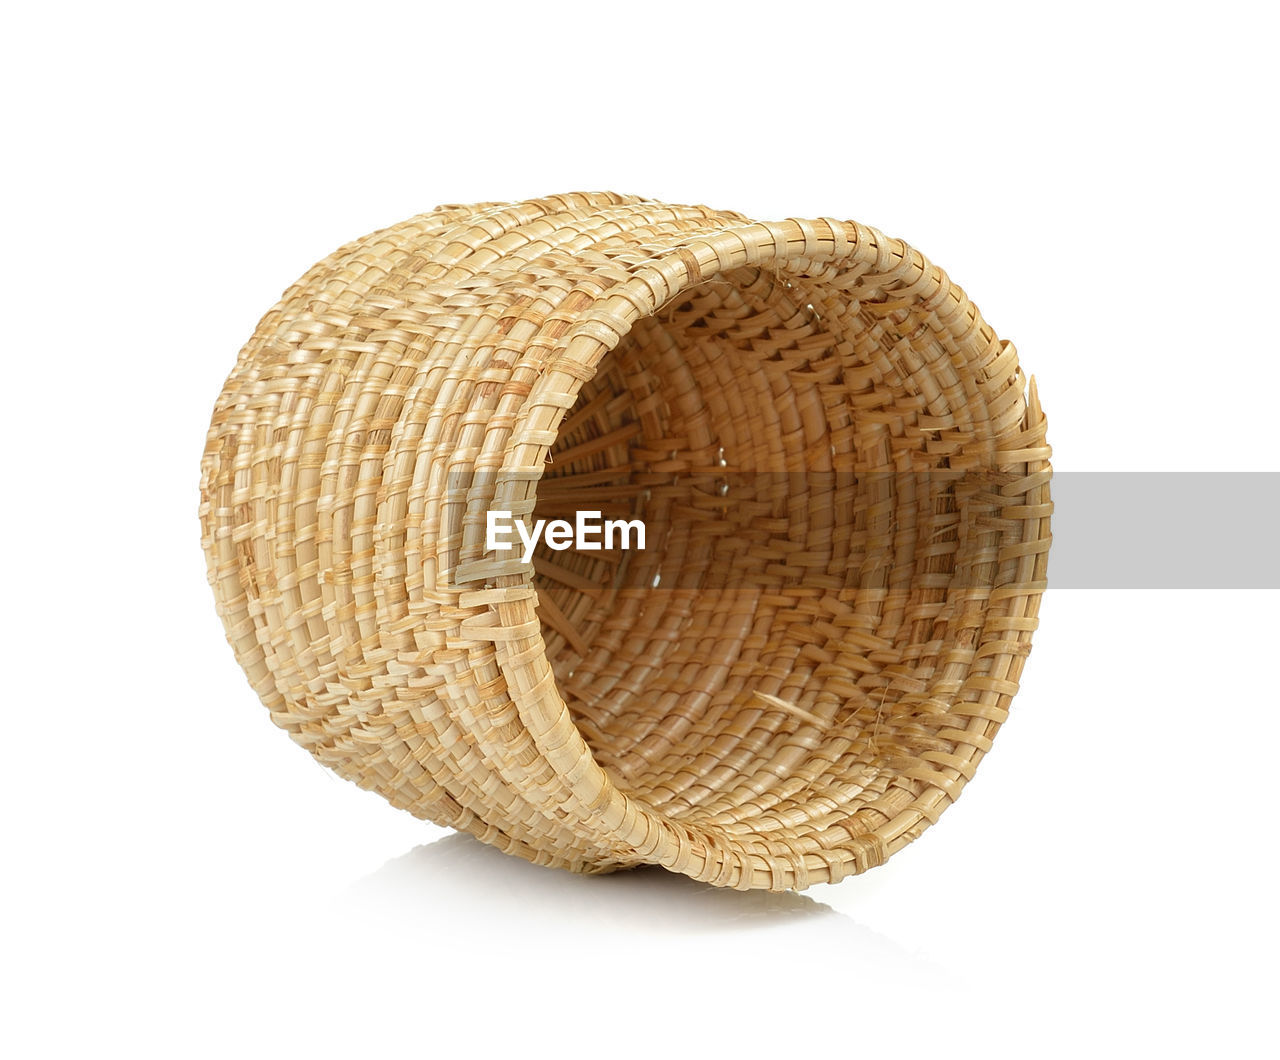 Close-up of wicker basket against white background